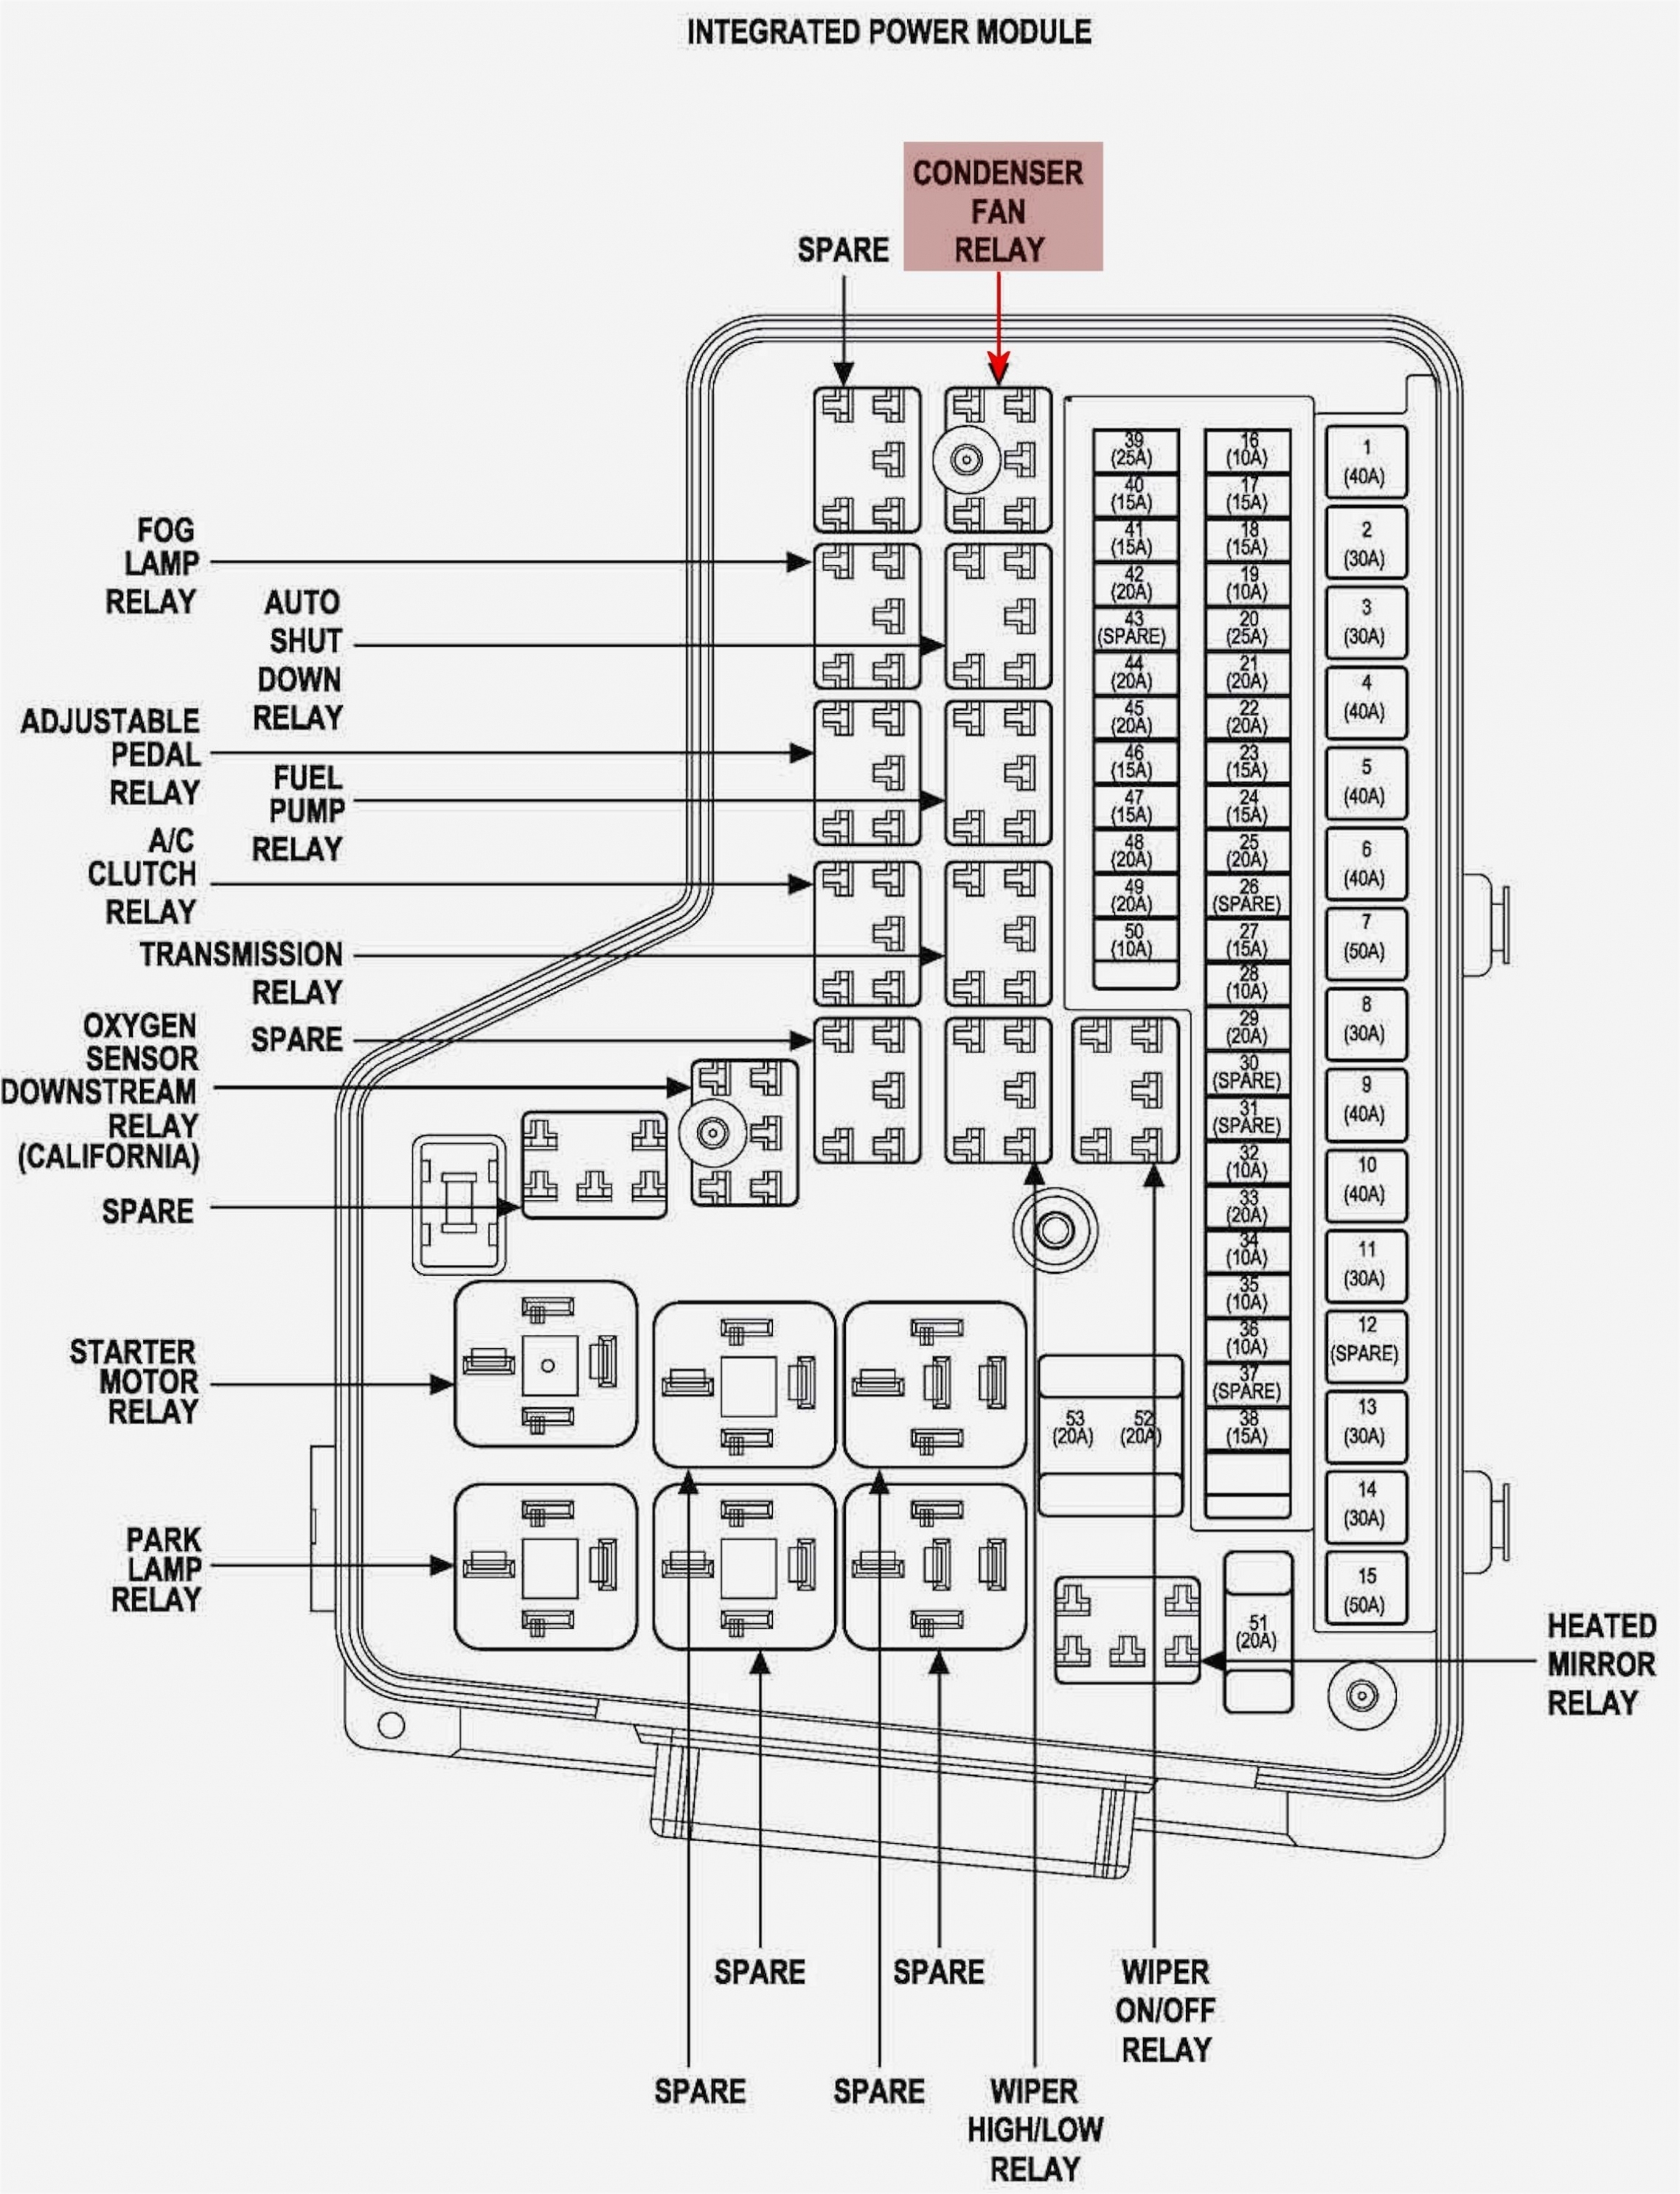 98 Dodge Ram Fuse Box Diagram - Diagram Data Schema on dodge pickup wiring diagram, dodge ram electrical diagram, dodge ignition wiring diagram, 1984 dodge d150 wiring diagram, 01 dodge ram water pump, 1985 dodge d150 wiring diagram, 01 kia rio wiring diagram, 01 dodge ram firing order, 01 dodge ram sub box, dodge ram 1500 diagram, 01 dodge ram seats, 01 dodge ram wiper motor, dodge infinity wiring diagram, 01 dodge ram brakes, 01 ford windstar wiring diagram, 01 dodge ram vacuum routing, 01 mitsubishi eclipse wiring diagram, 01 opel astra wiring diagram, 01 dodge ram headlights, 01 lincoln continental wiring diagram,